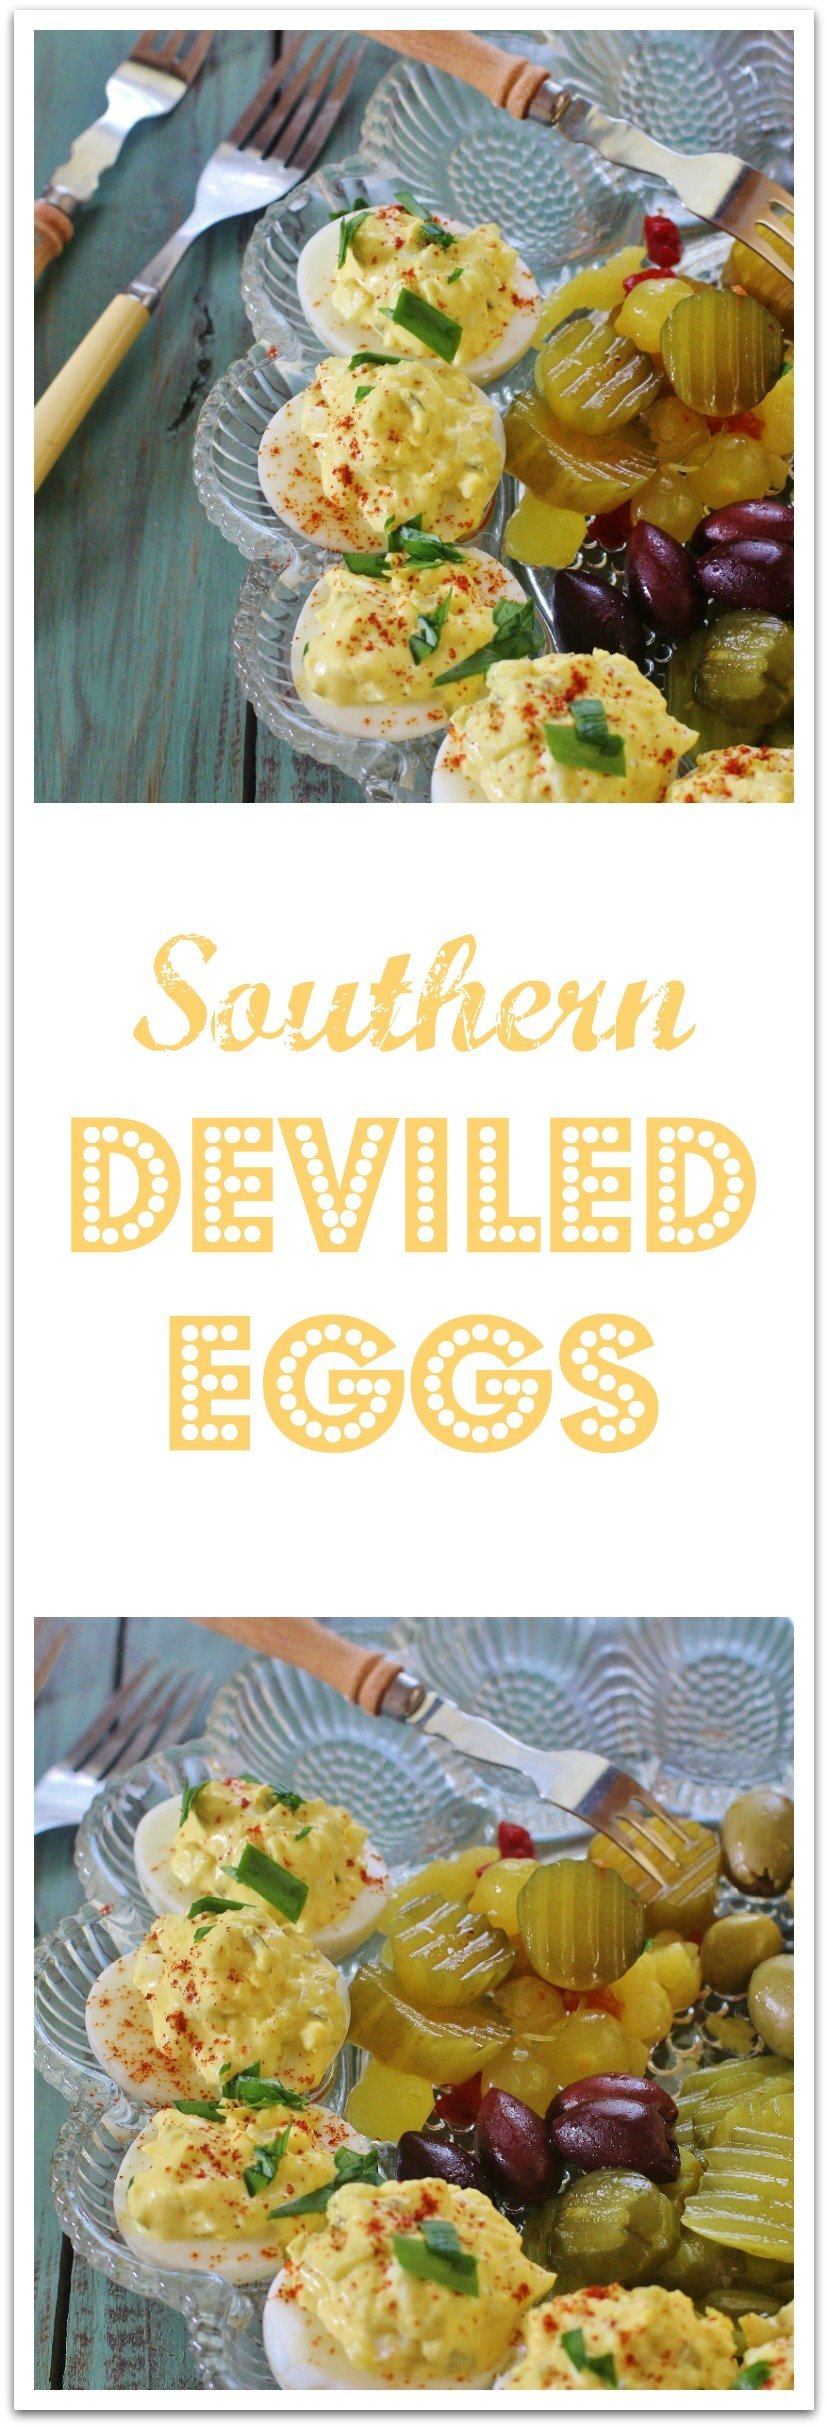 There's many ways to modify the basic filling recipe. Add in bacon, ham, pimmenocheese (that's how we say it), olives, avocado, green onions, etc. #DeviledEggs #SouthernStyle